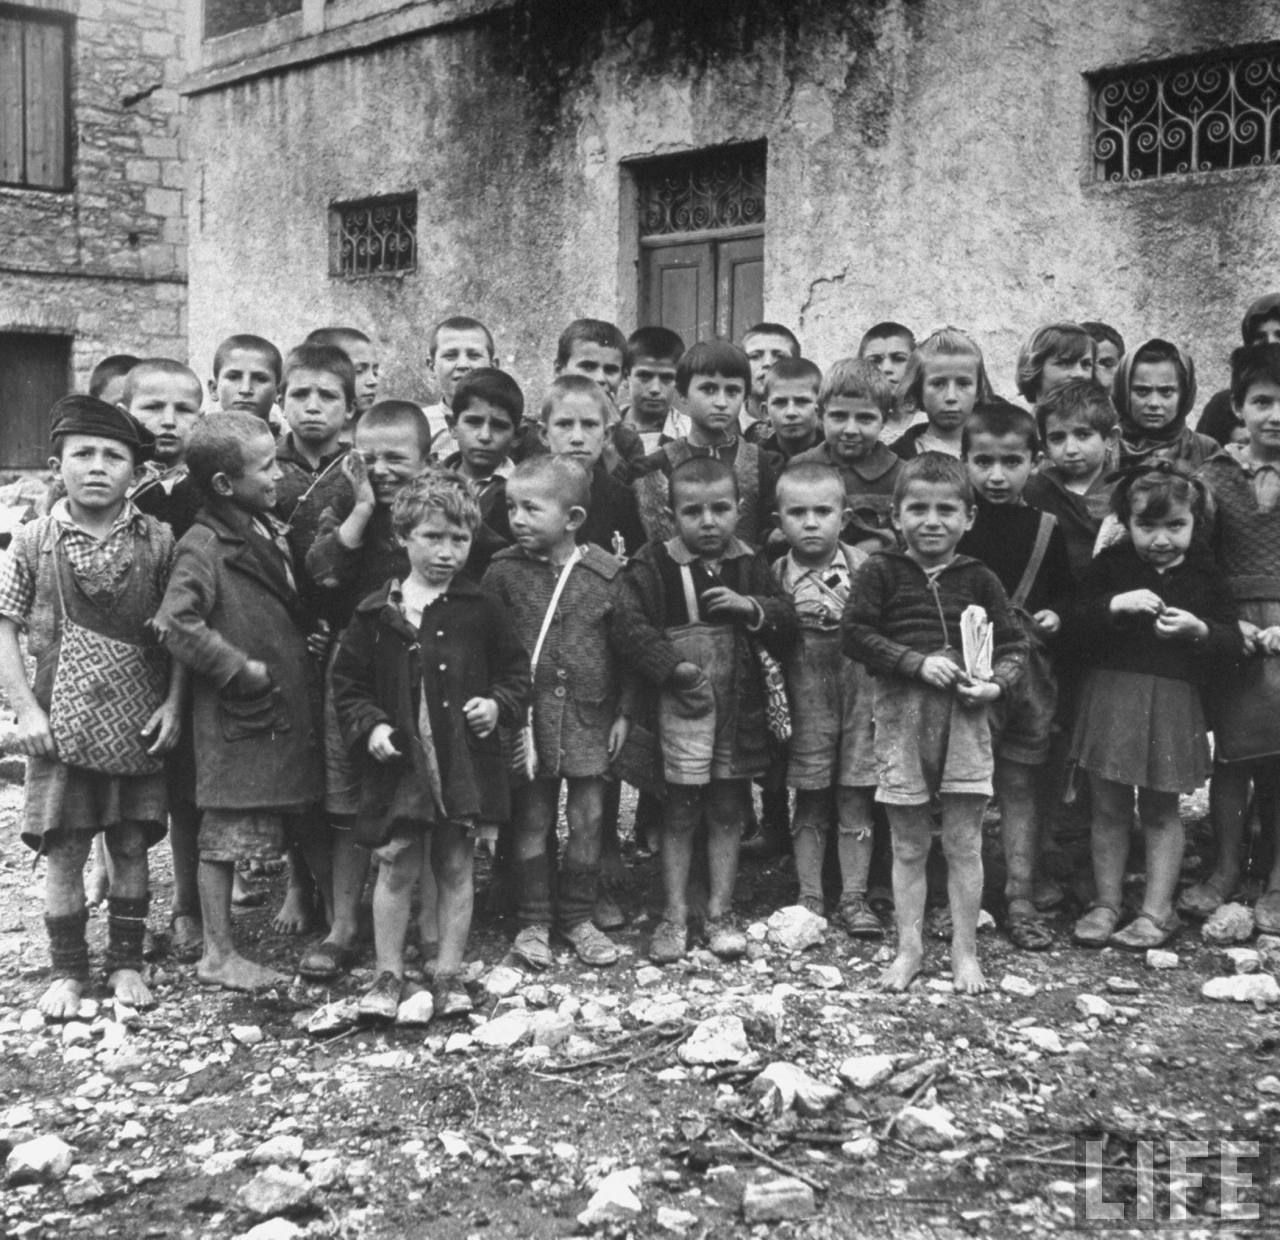 Greek children, mostly orphans,during WWII.  Location: Greece  Date taken: October 1944